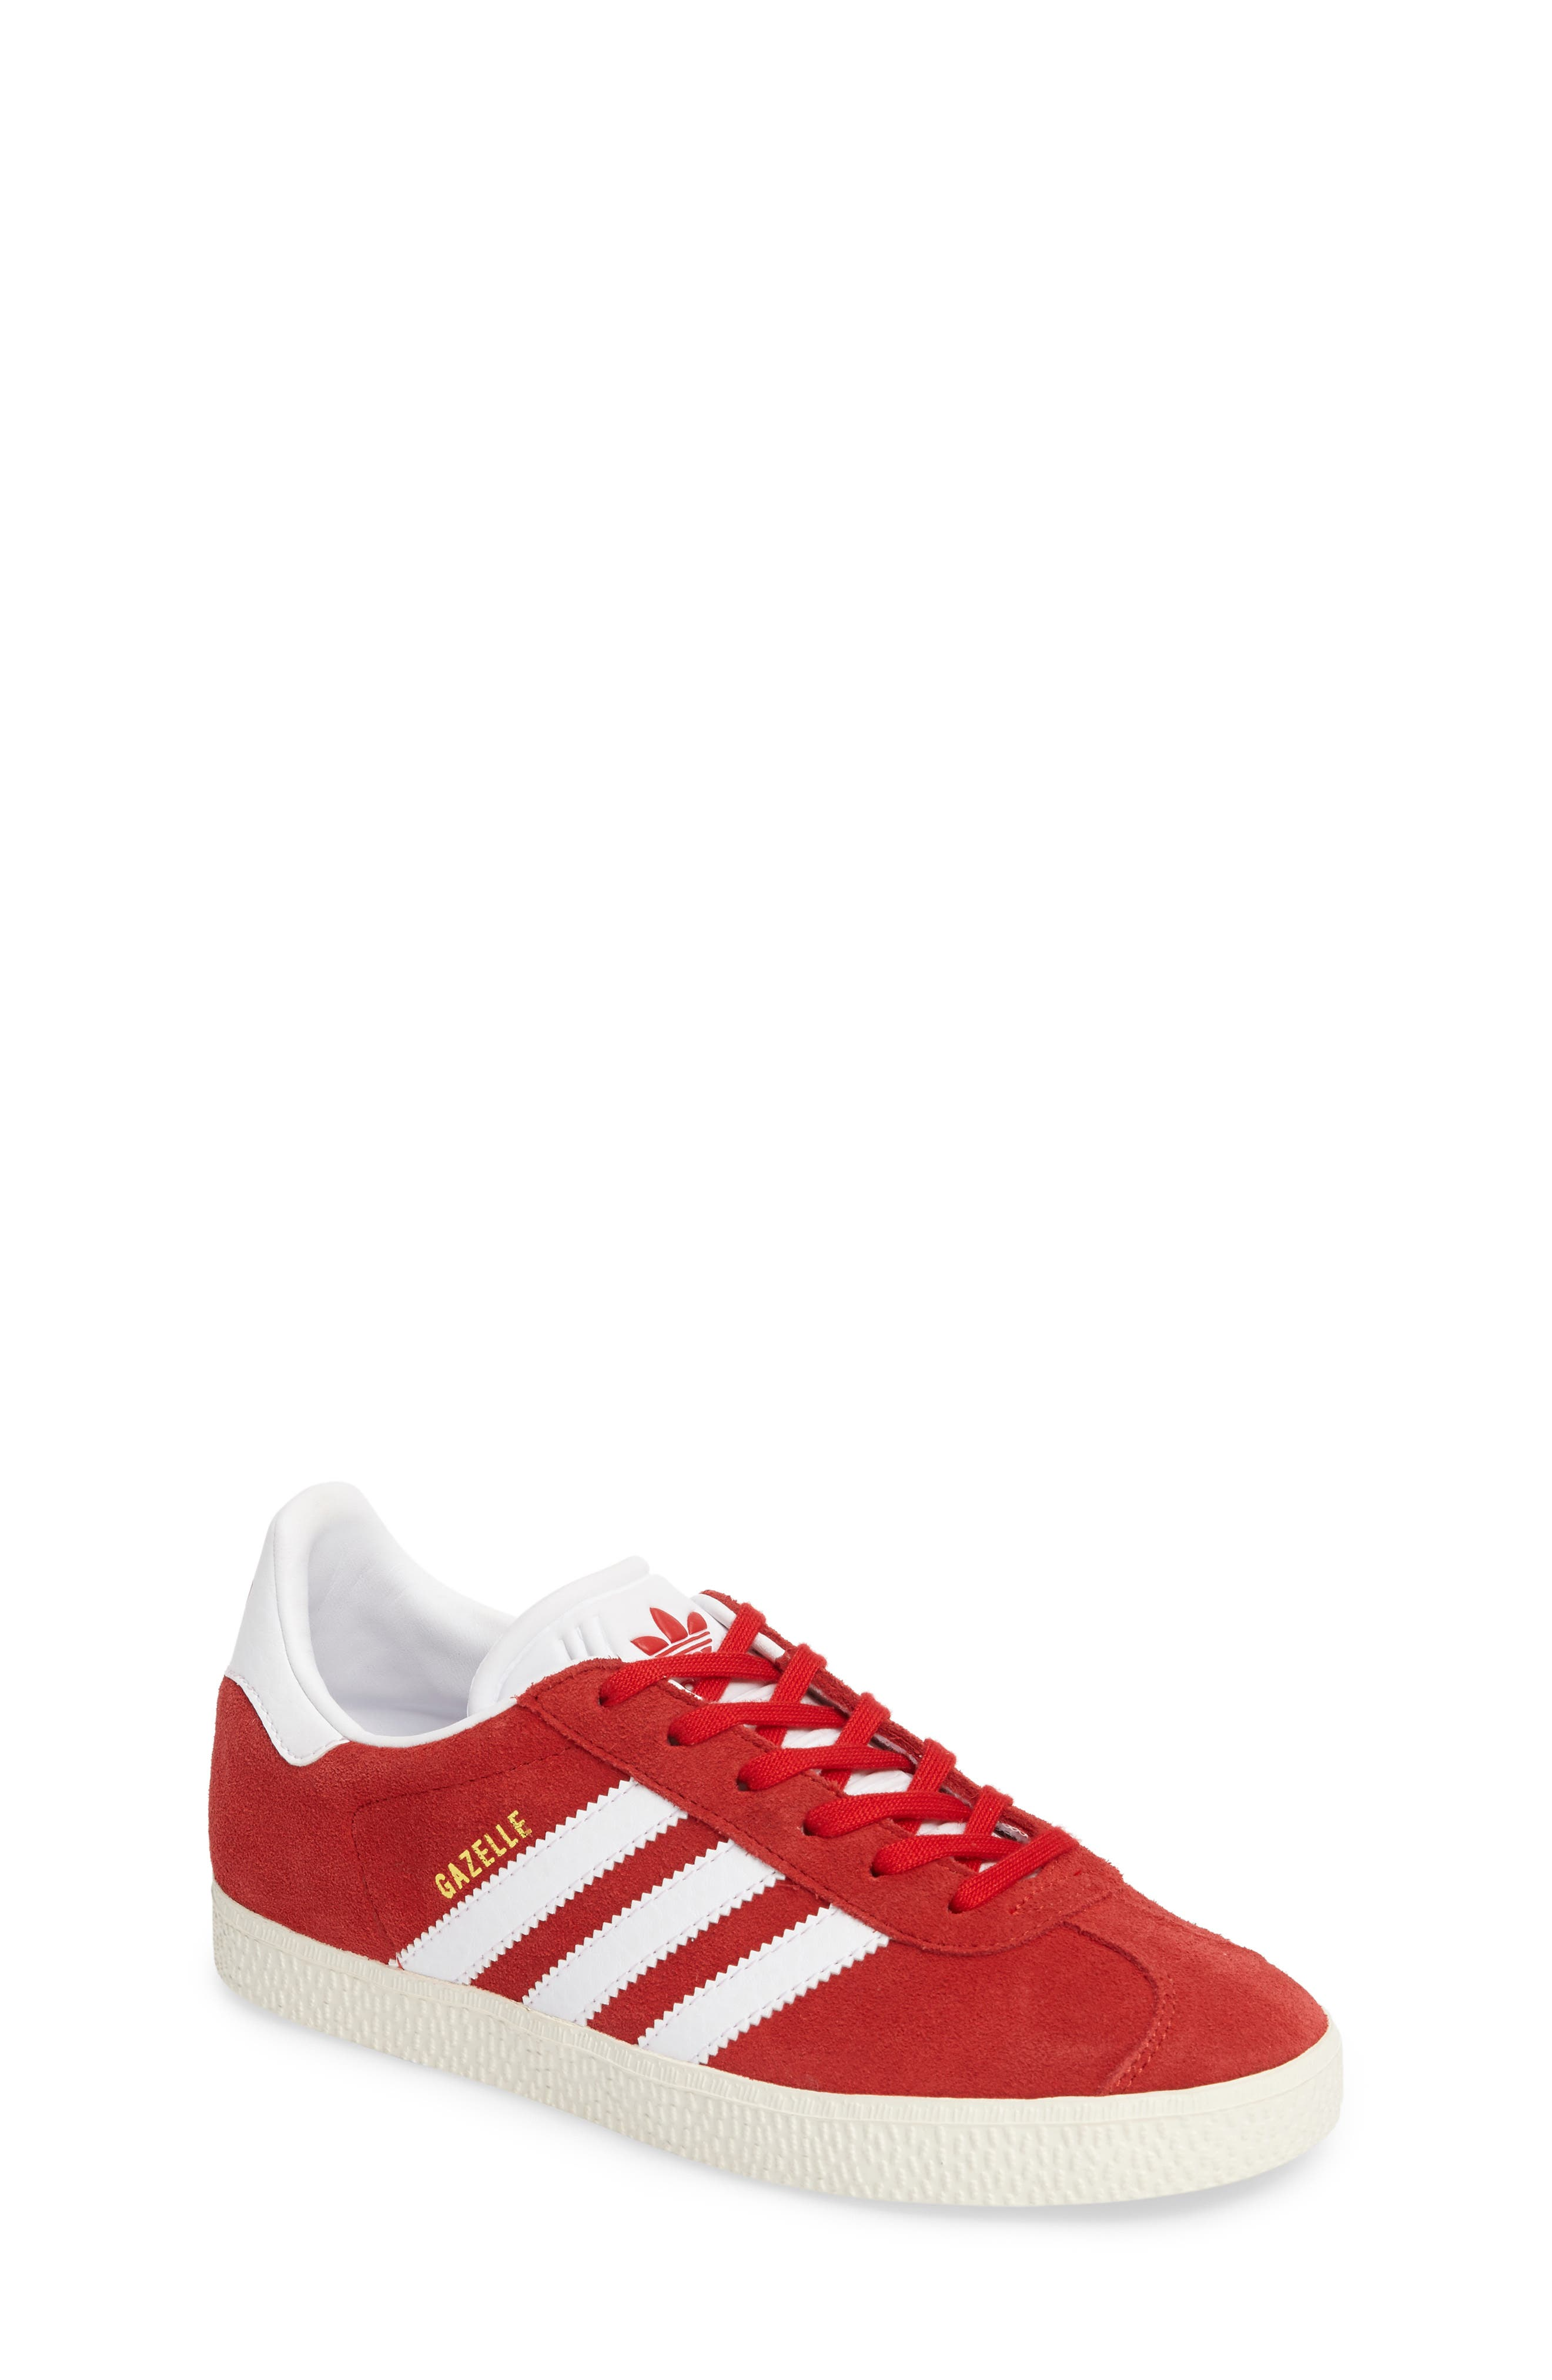 Main Image - adidas Gazelle Sneaker (Big Kid)